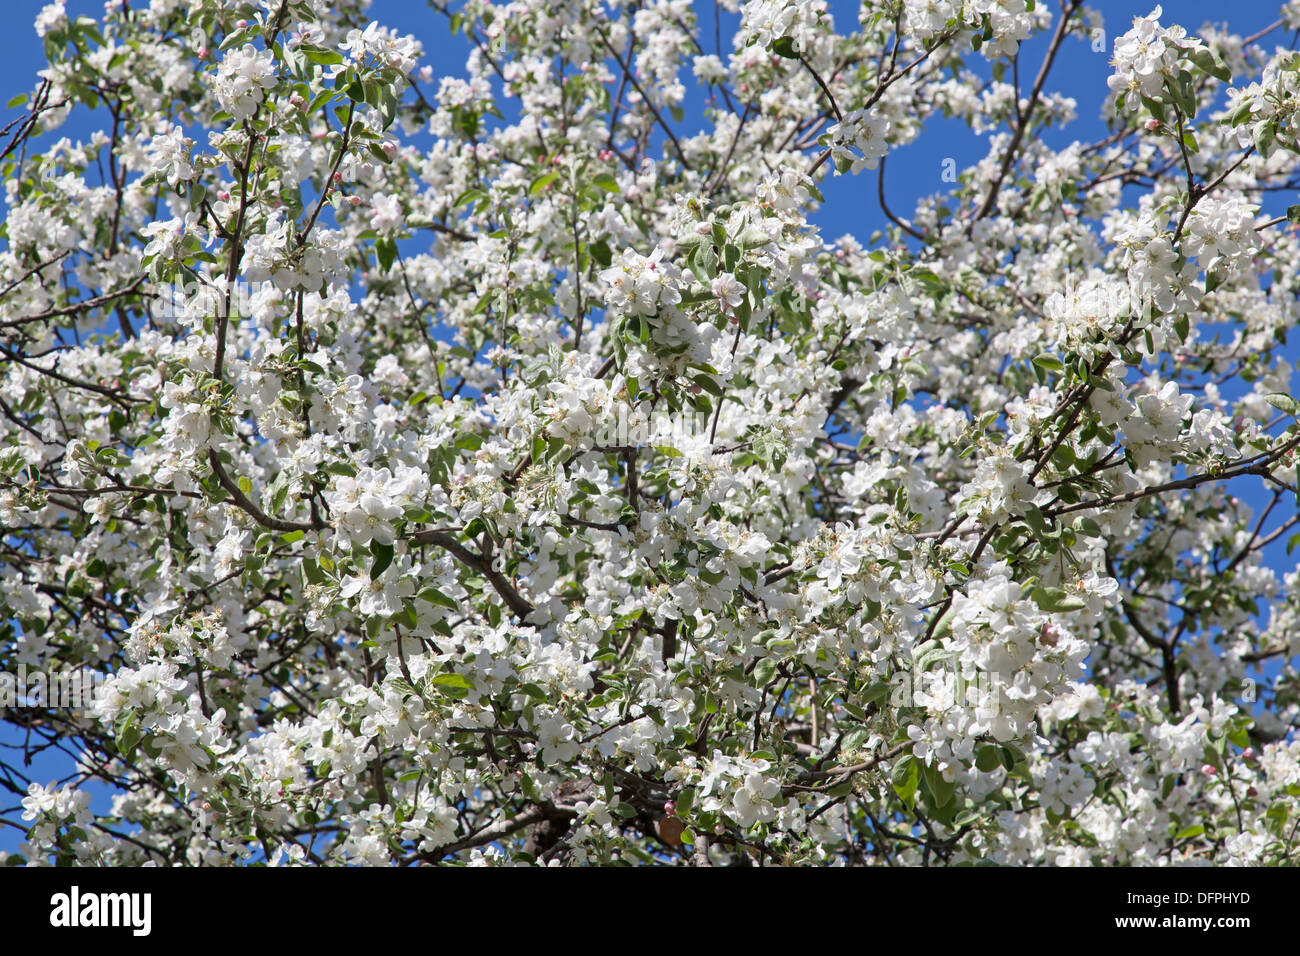 Ornamental Peach Tree Stock Photos Ornamental Peach Tree Stock